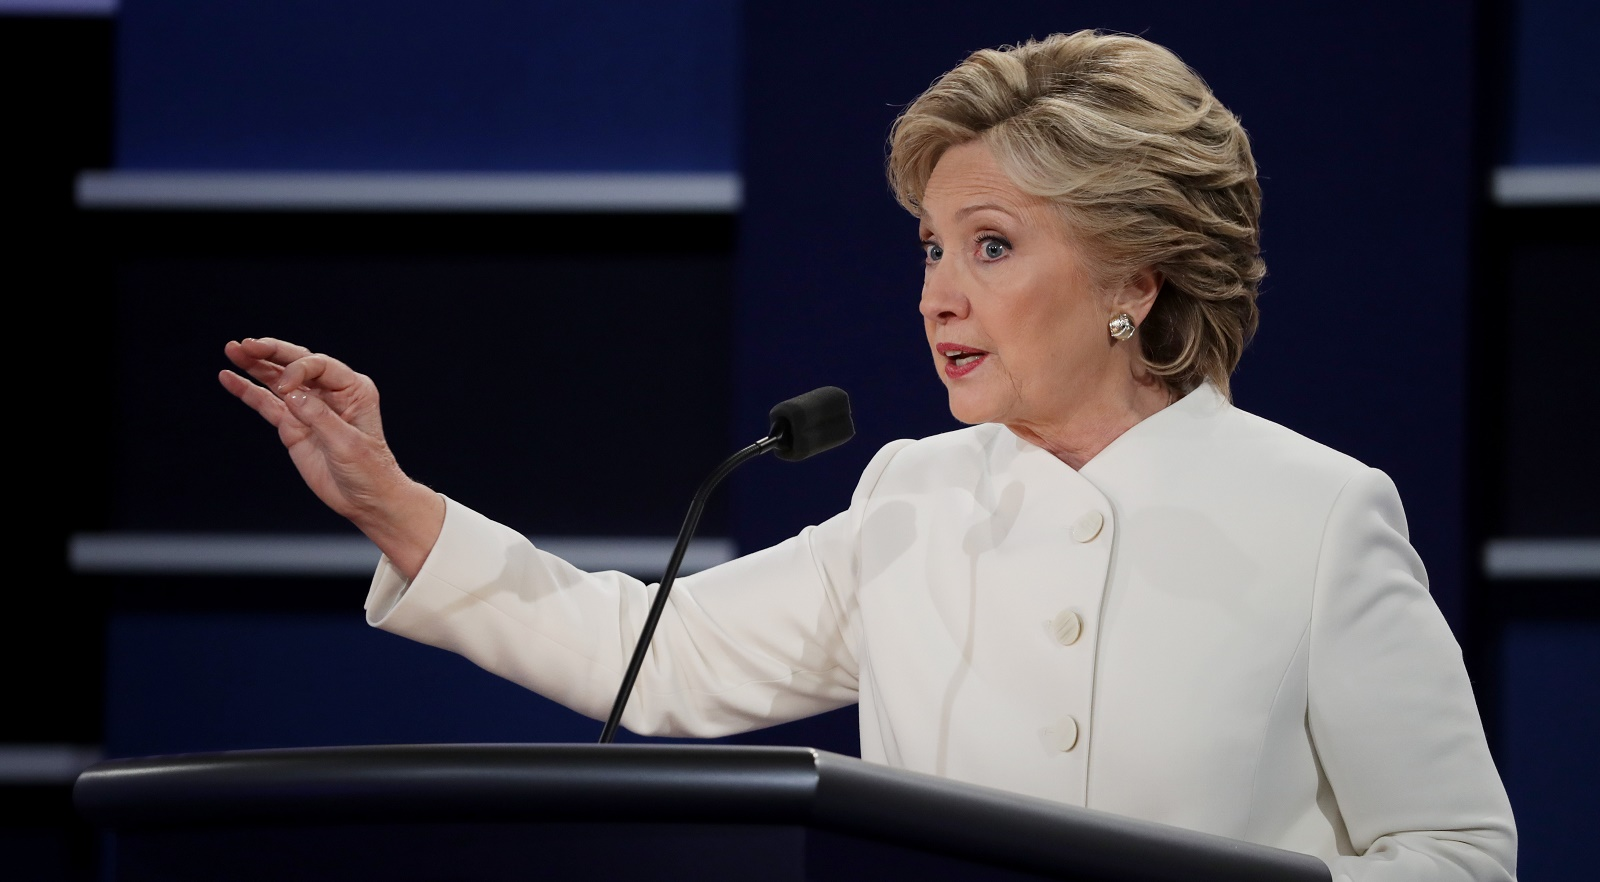 LAS VEGAS, NV - OCTOBER 19:  Democratic presidential nominee former Secretary of State Hillary Clinton speaks during the third U.S. presidential debate at the Thomas & Mack Center on October 19, 2016 in Las Vegas, Nevada. Tonight is the final debate ahead of Election Day on November 8.  (Photo by Chip Somodevilla/Getty Images)